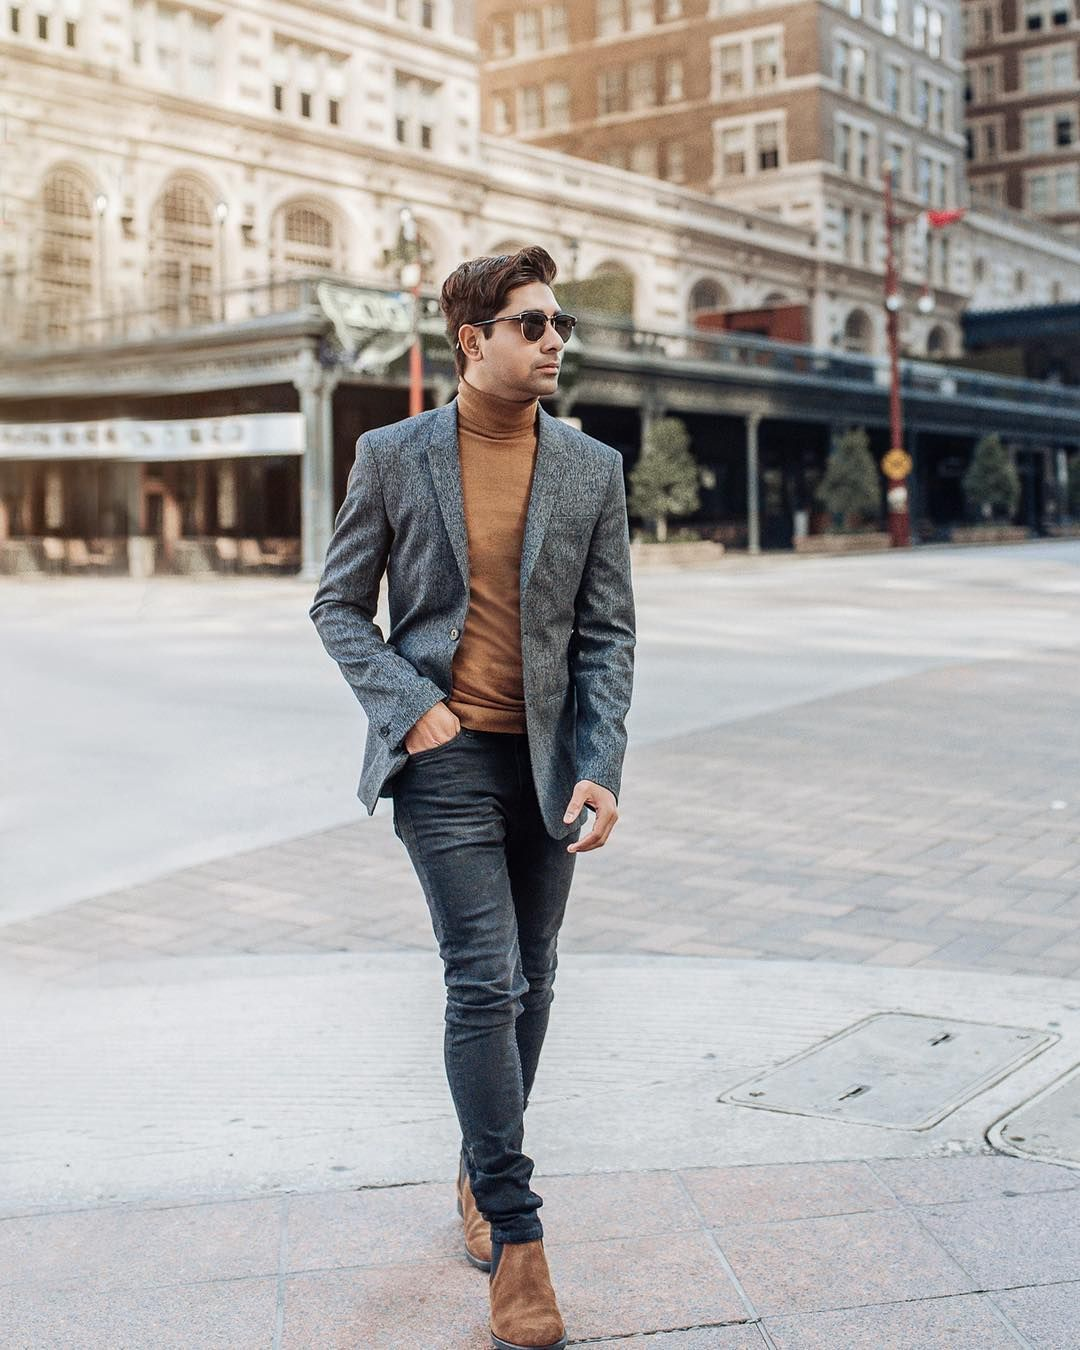 Classy fall outfits for men for Autum urban casual in